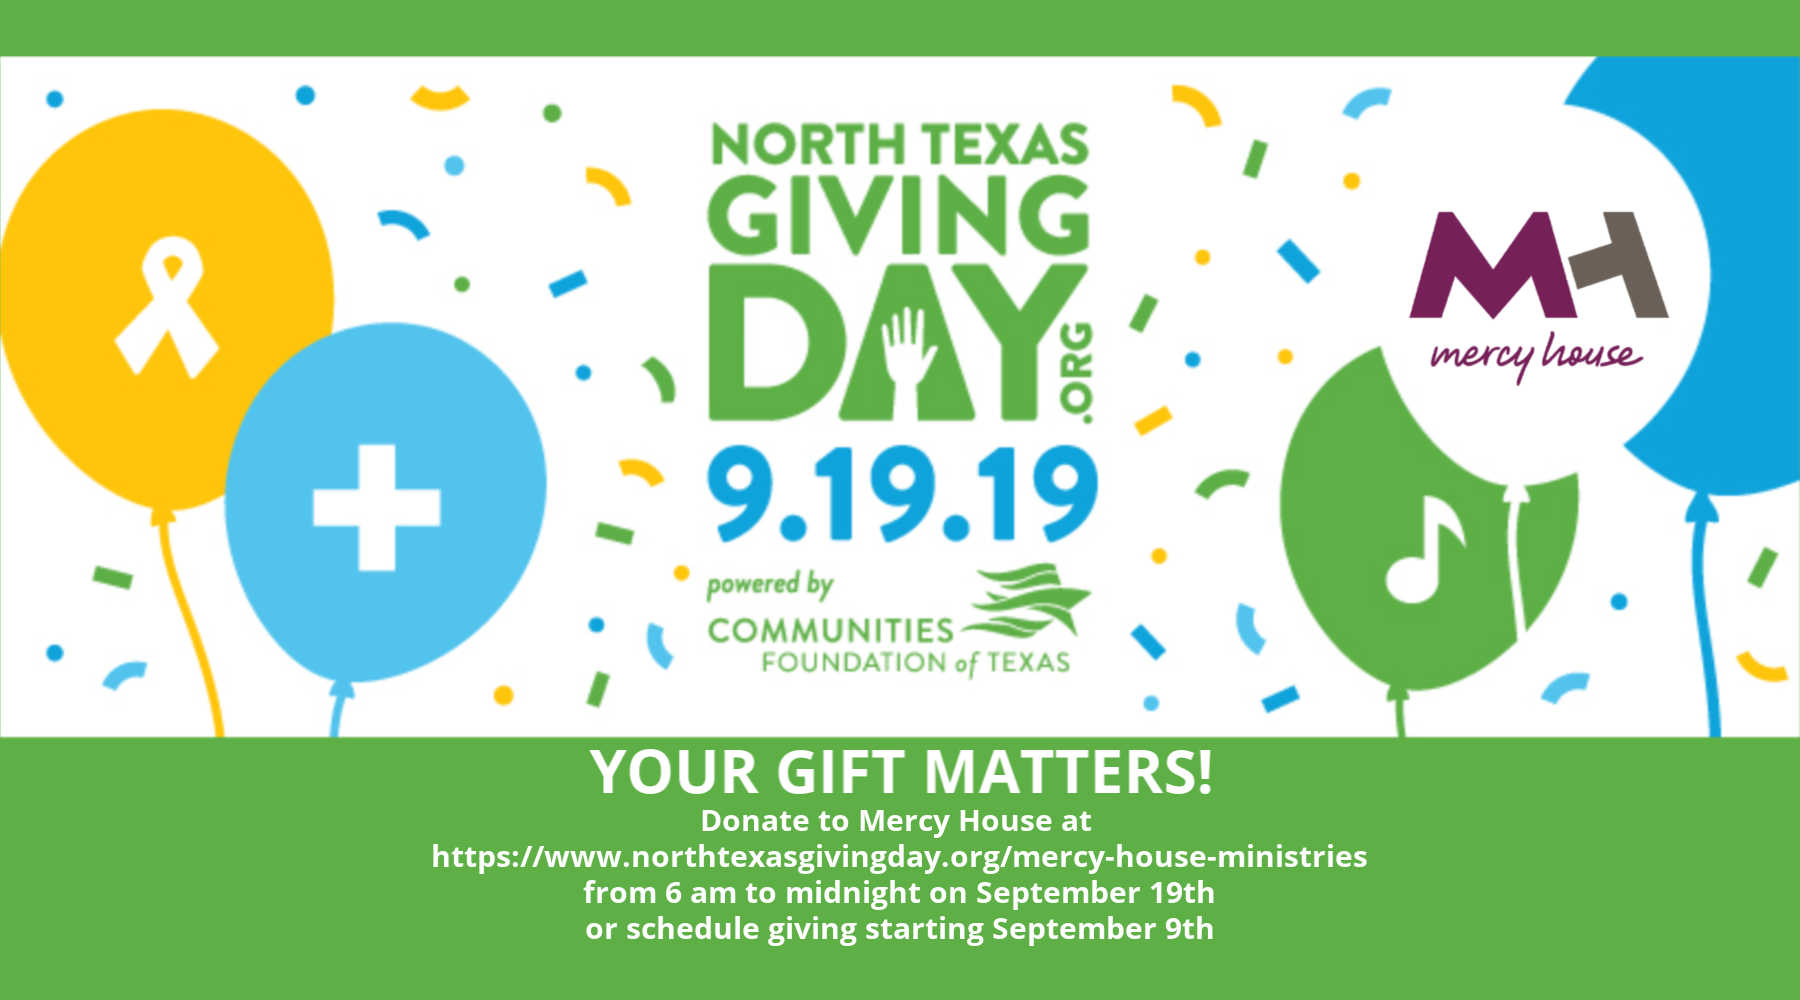 Mercy House is participating in the 2019 North Texas Giving Day on 9-19-19